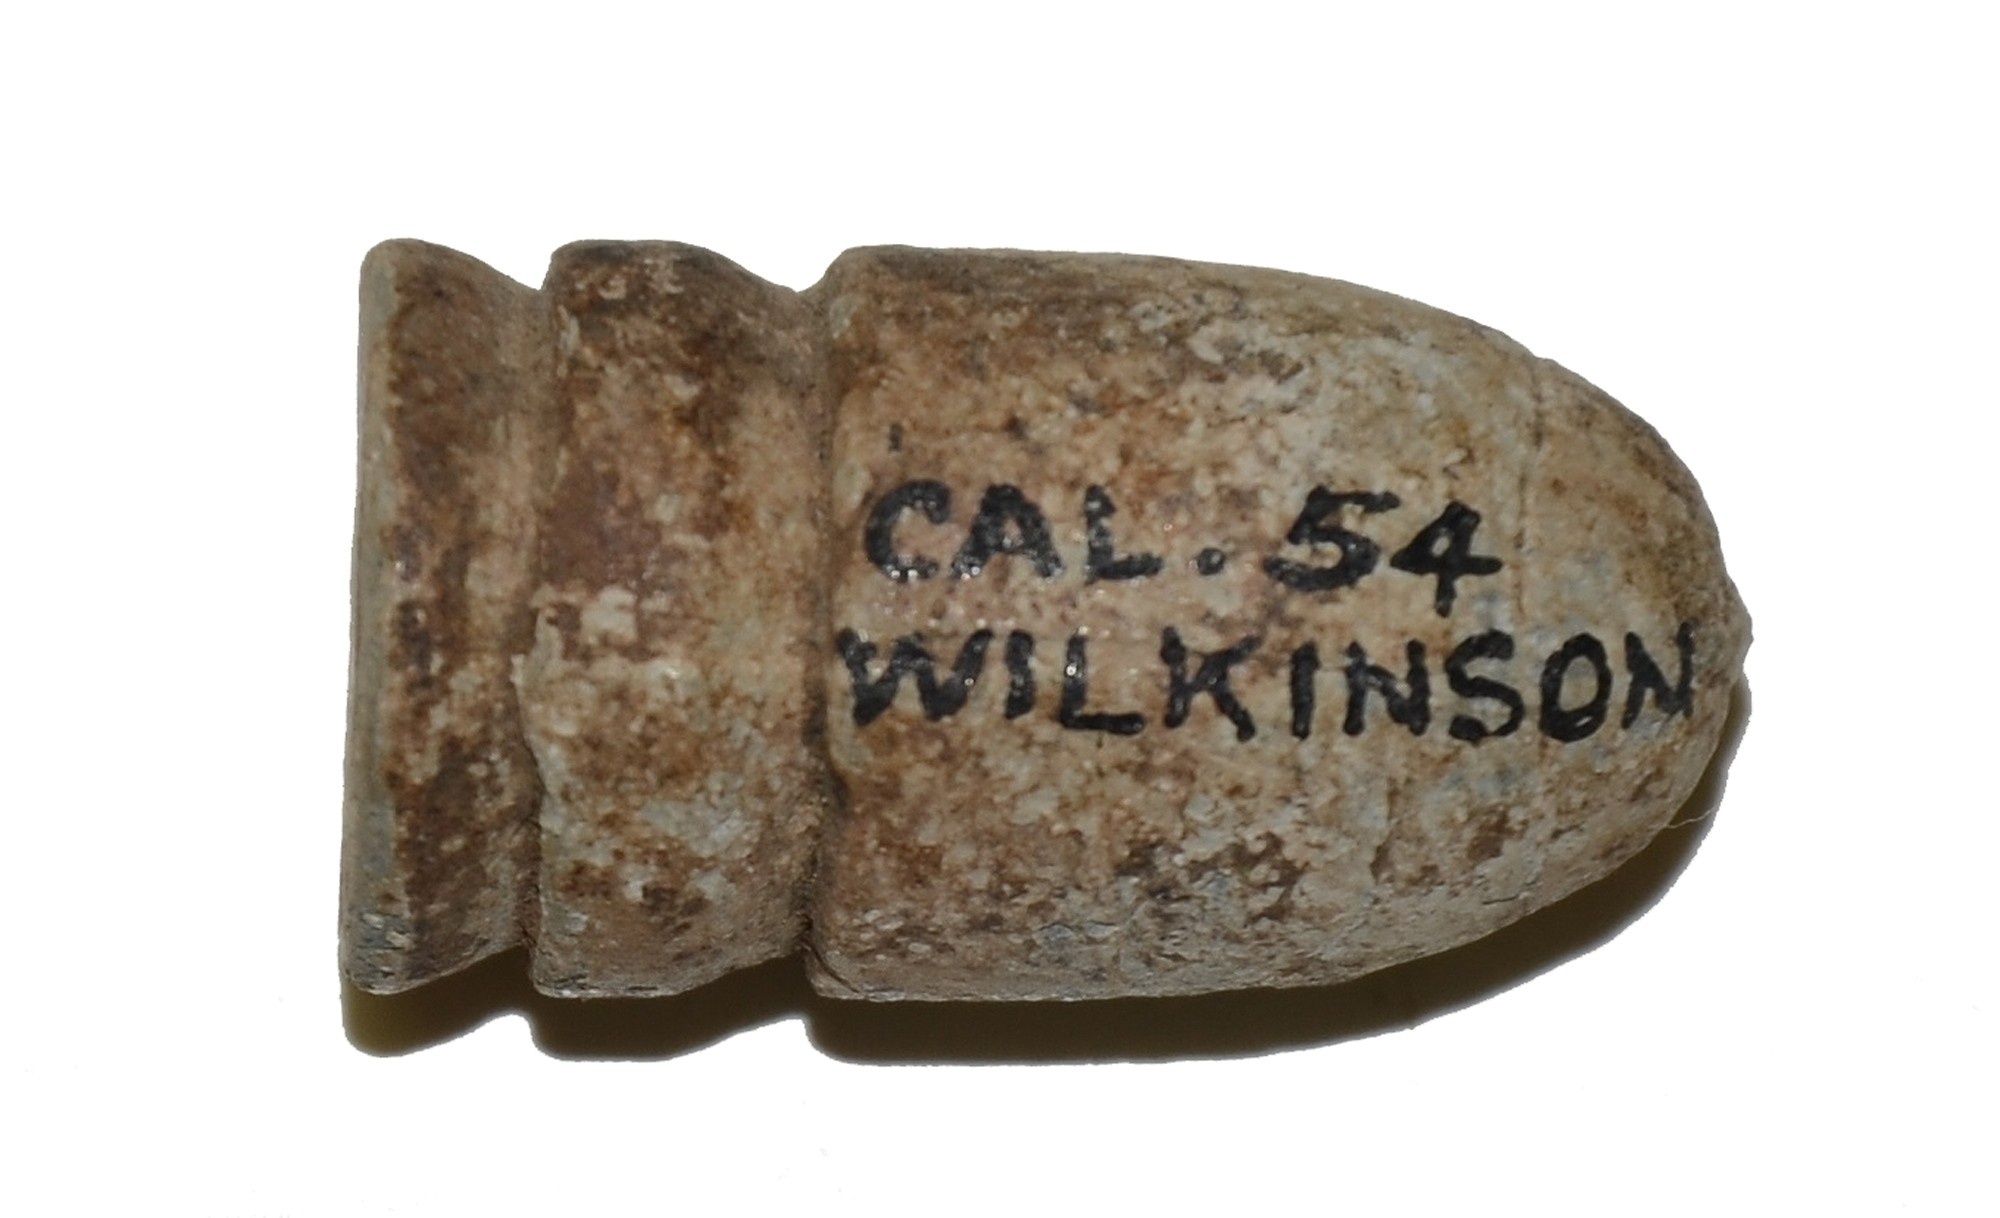 CONFEDERATE .54 WILKINSON BULLET FROM THE MAC MASON COLLECTION